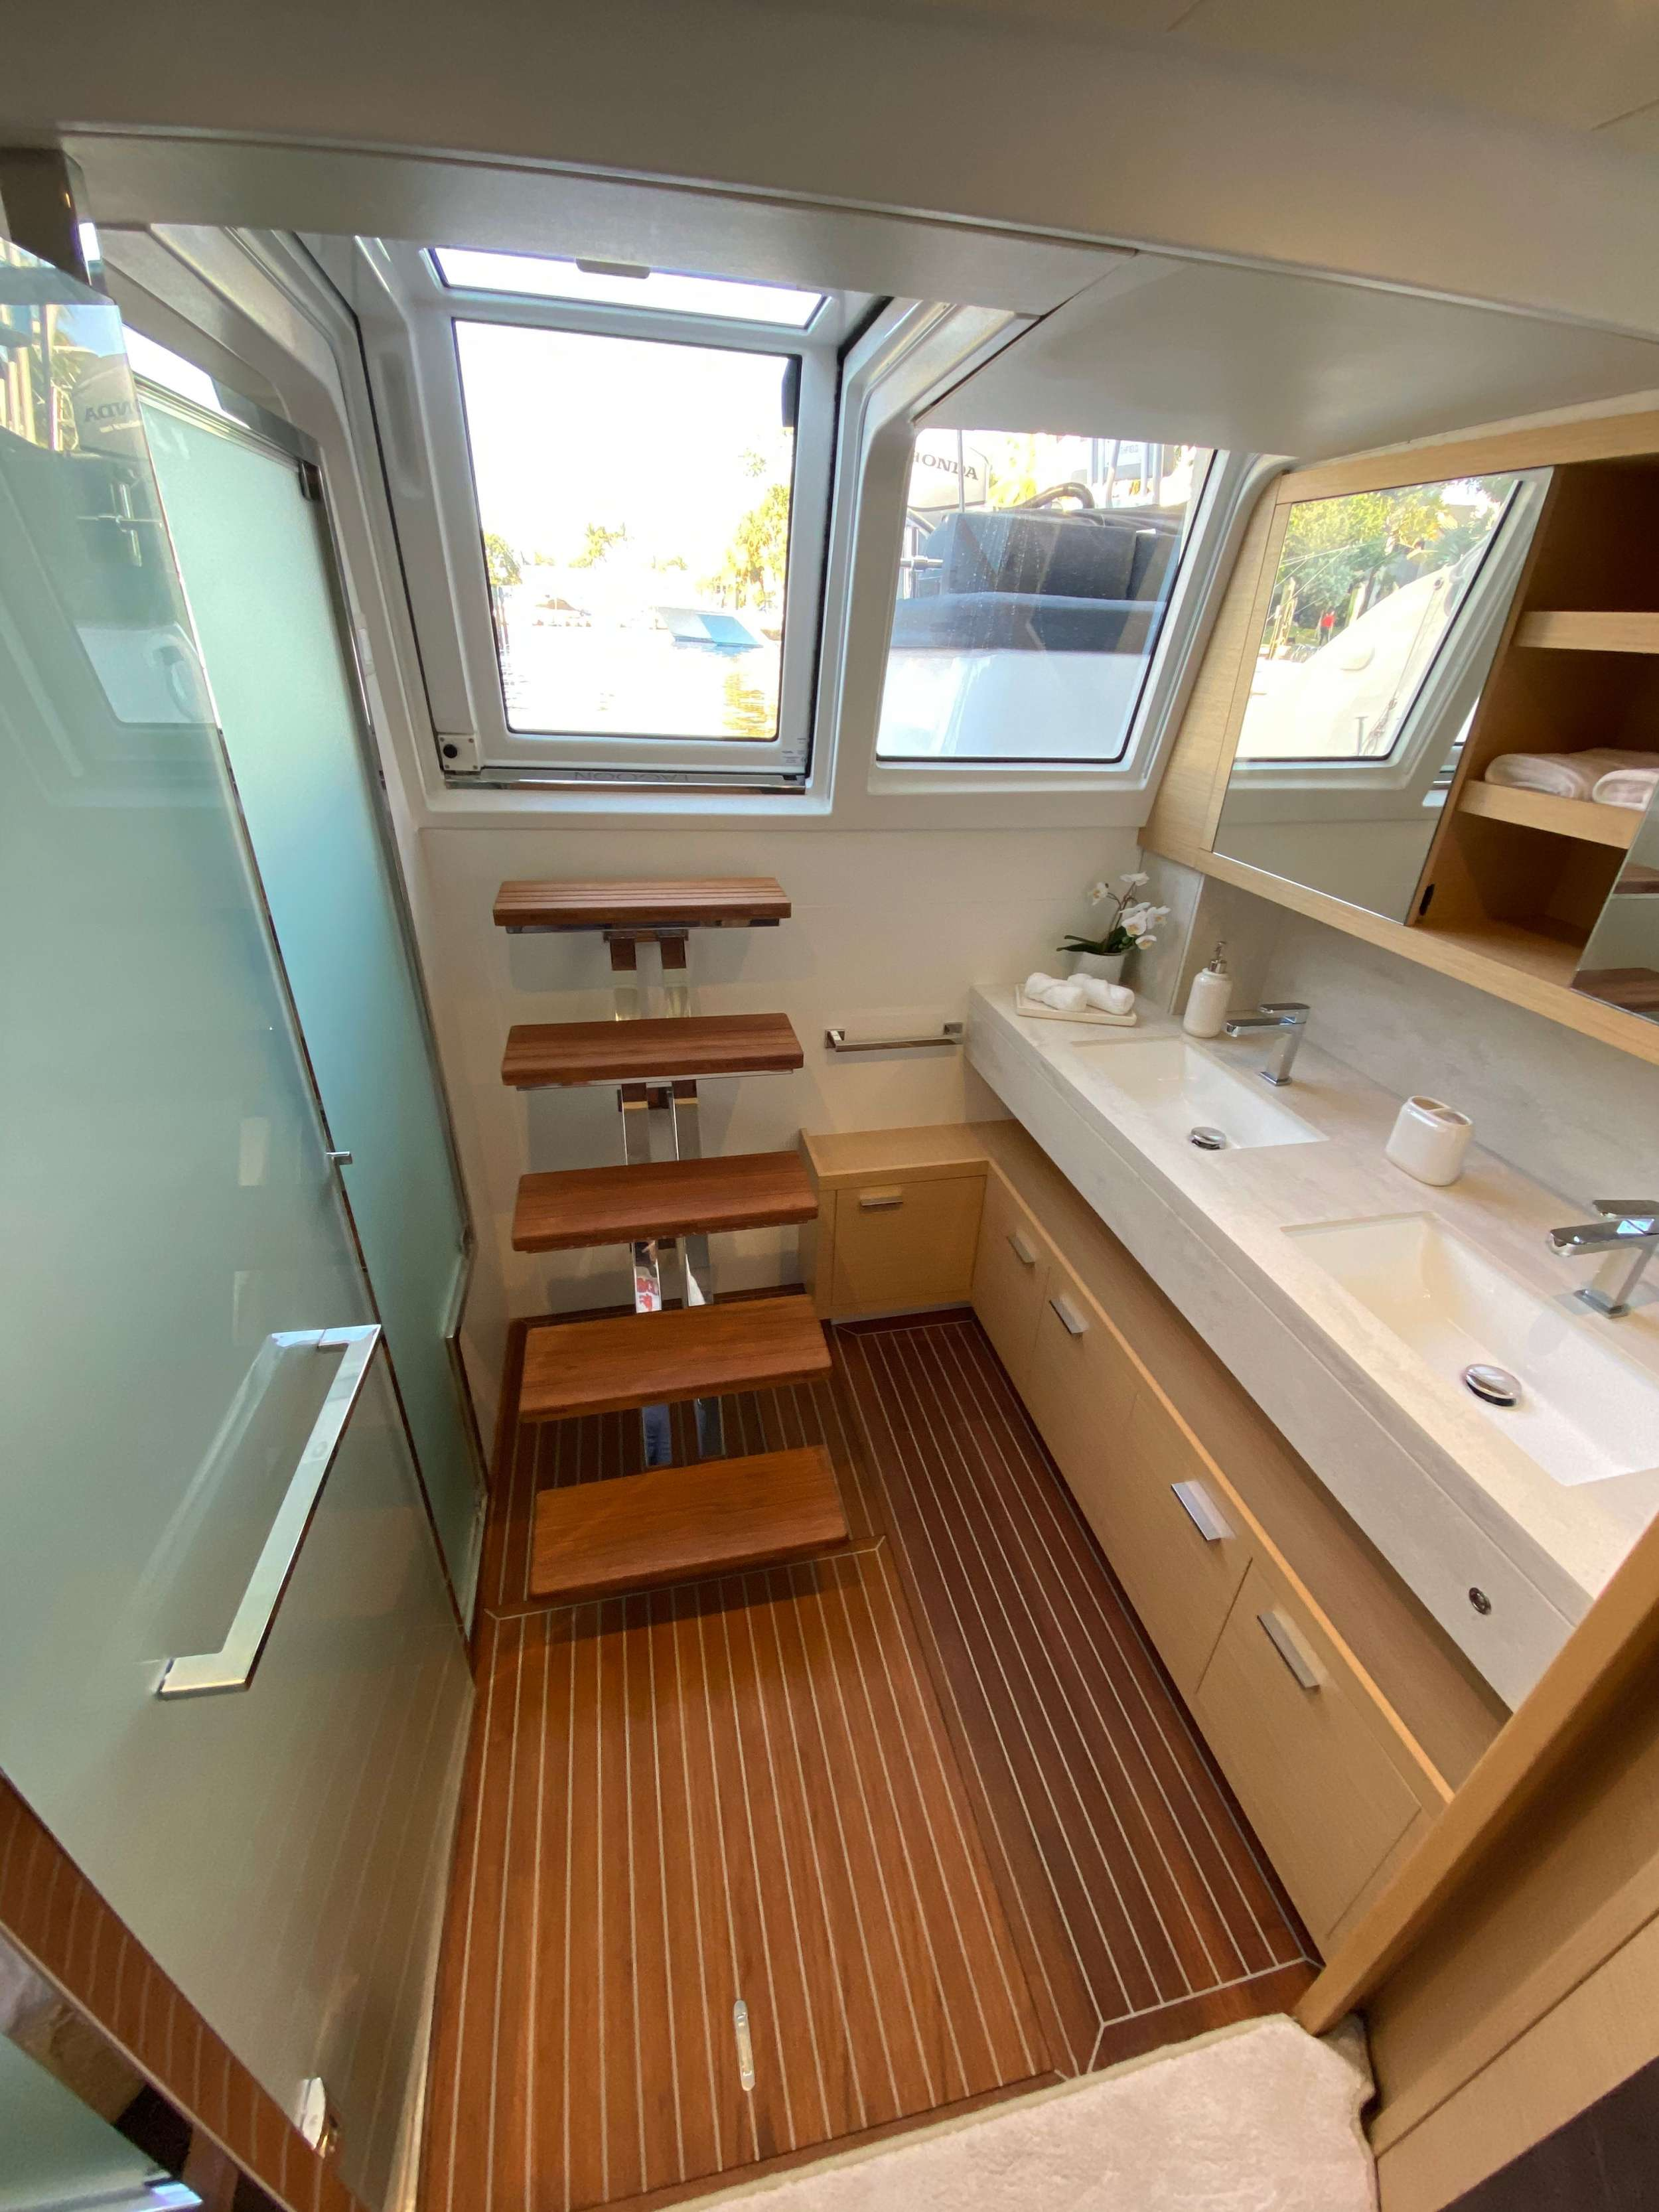 Primary sink, shower, aft access